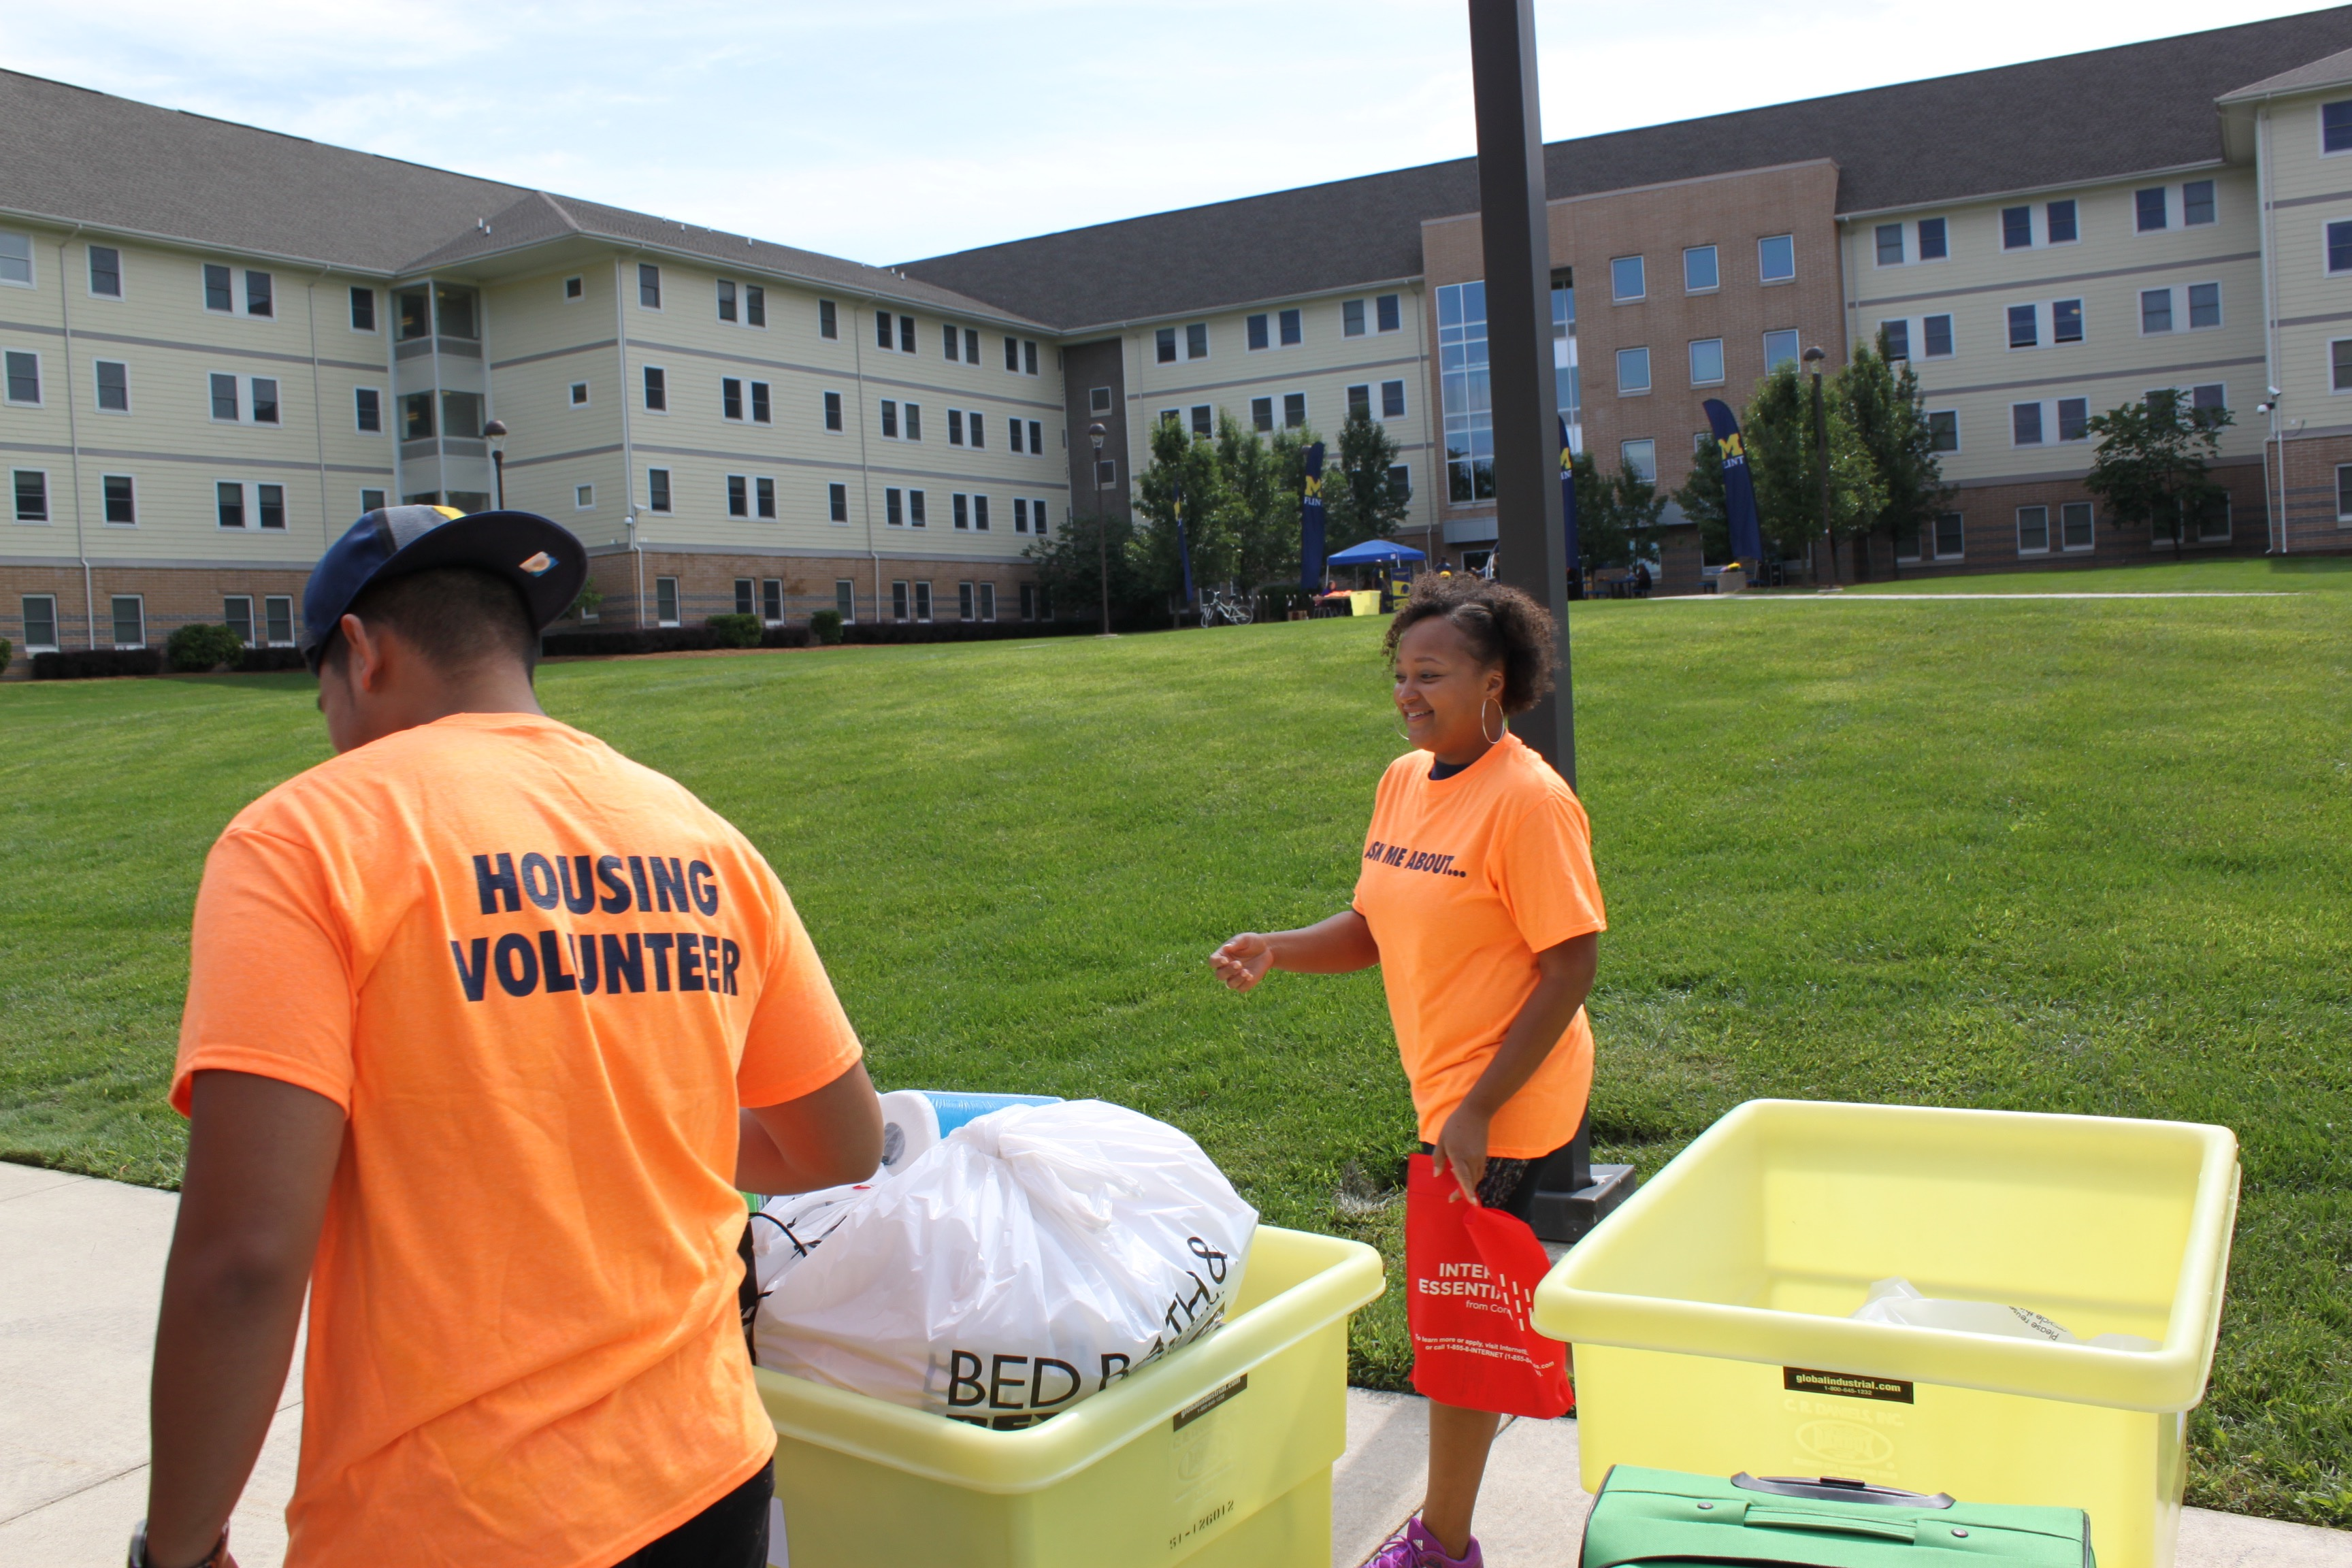 LaTanya Hughes volunteering at First Street Residence Hall's 2017 Move-in Day